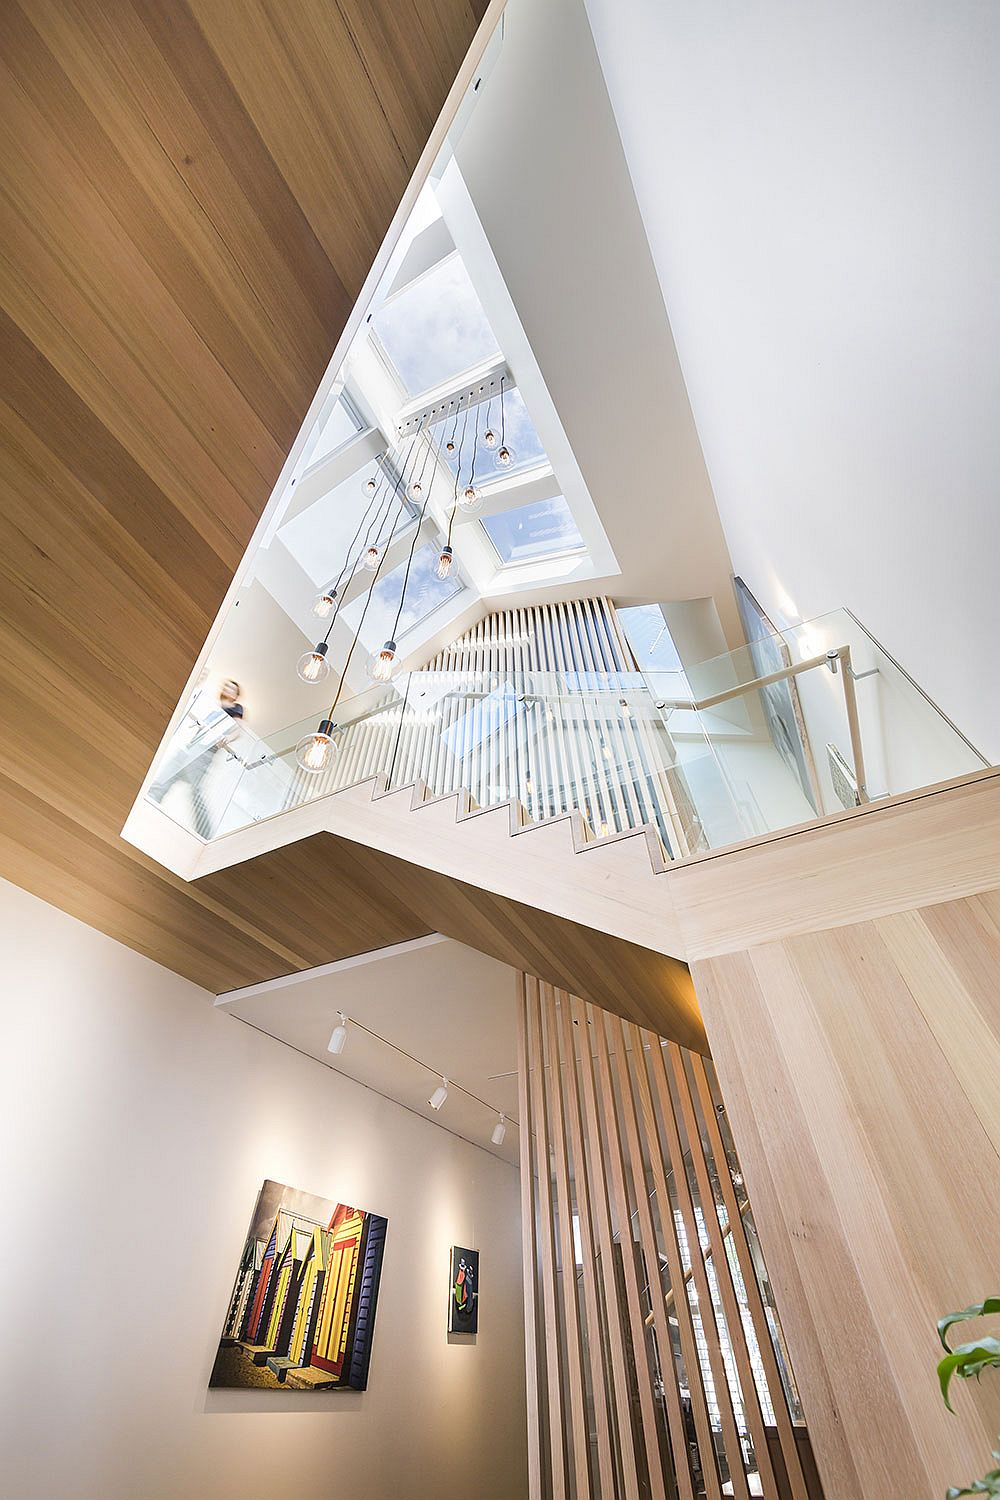 Beautiful ligting creates an airy interior with refined aesthetics